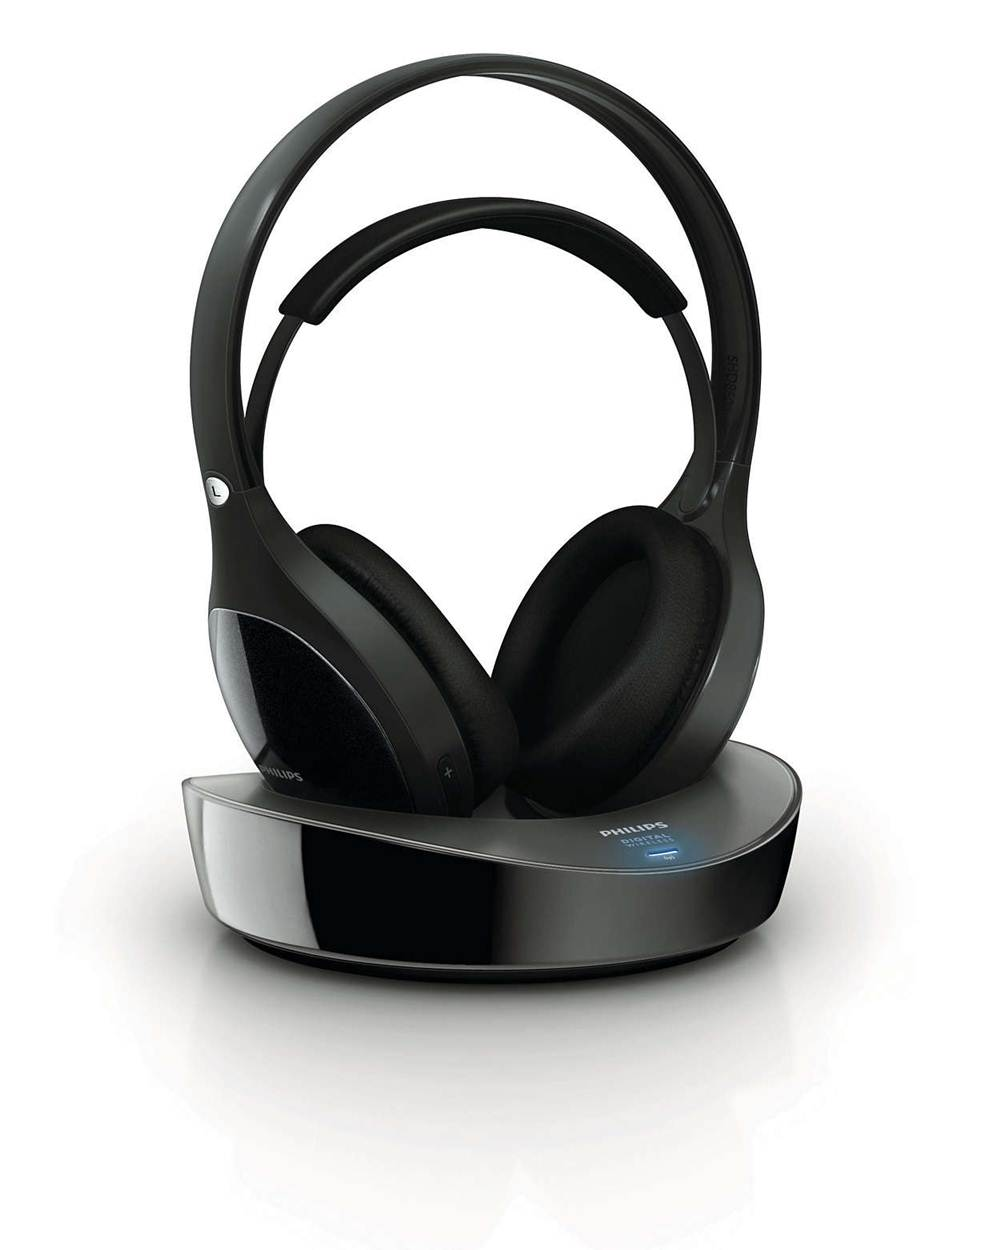 Philips SHD8600 Over Ear Wireless HiFi Headphones